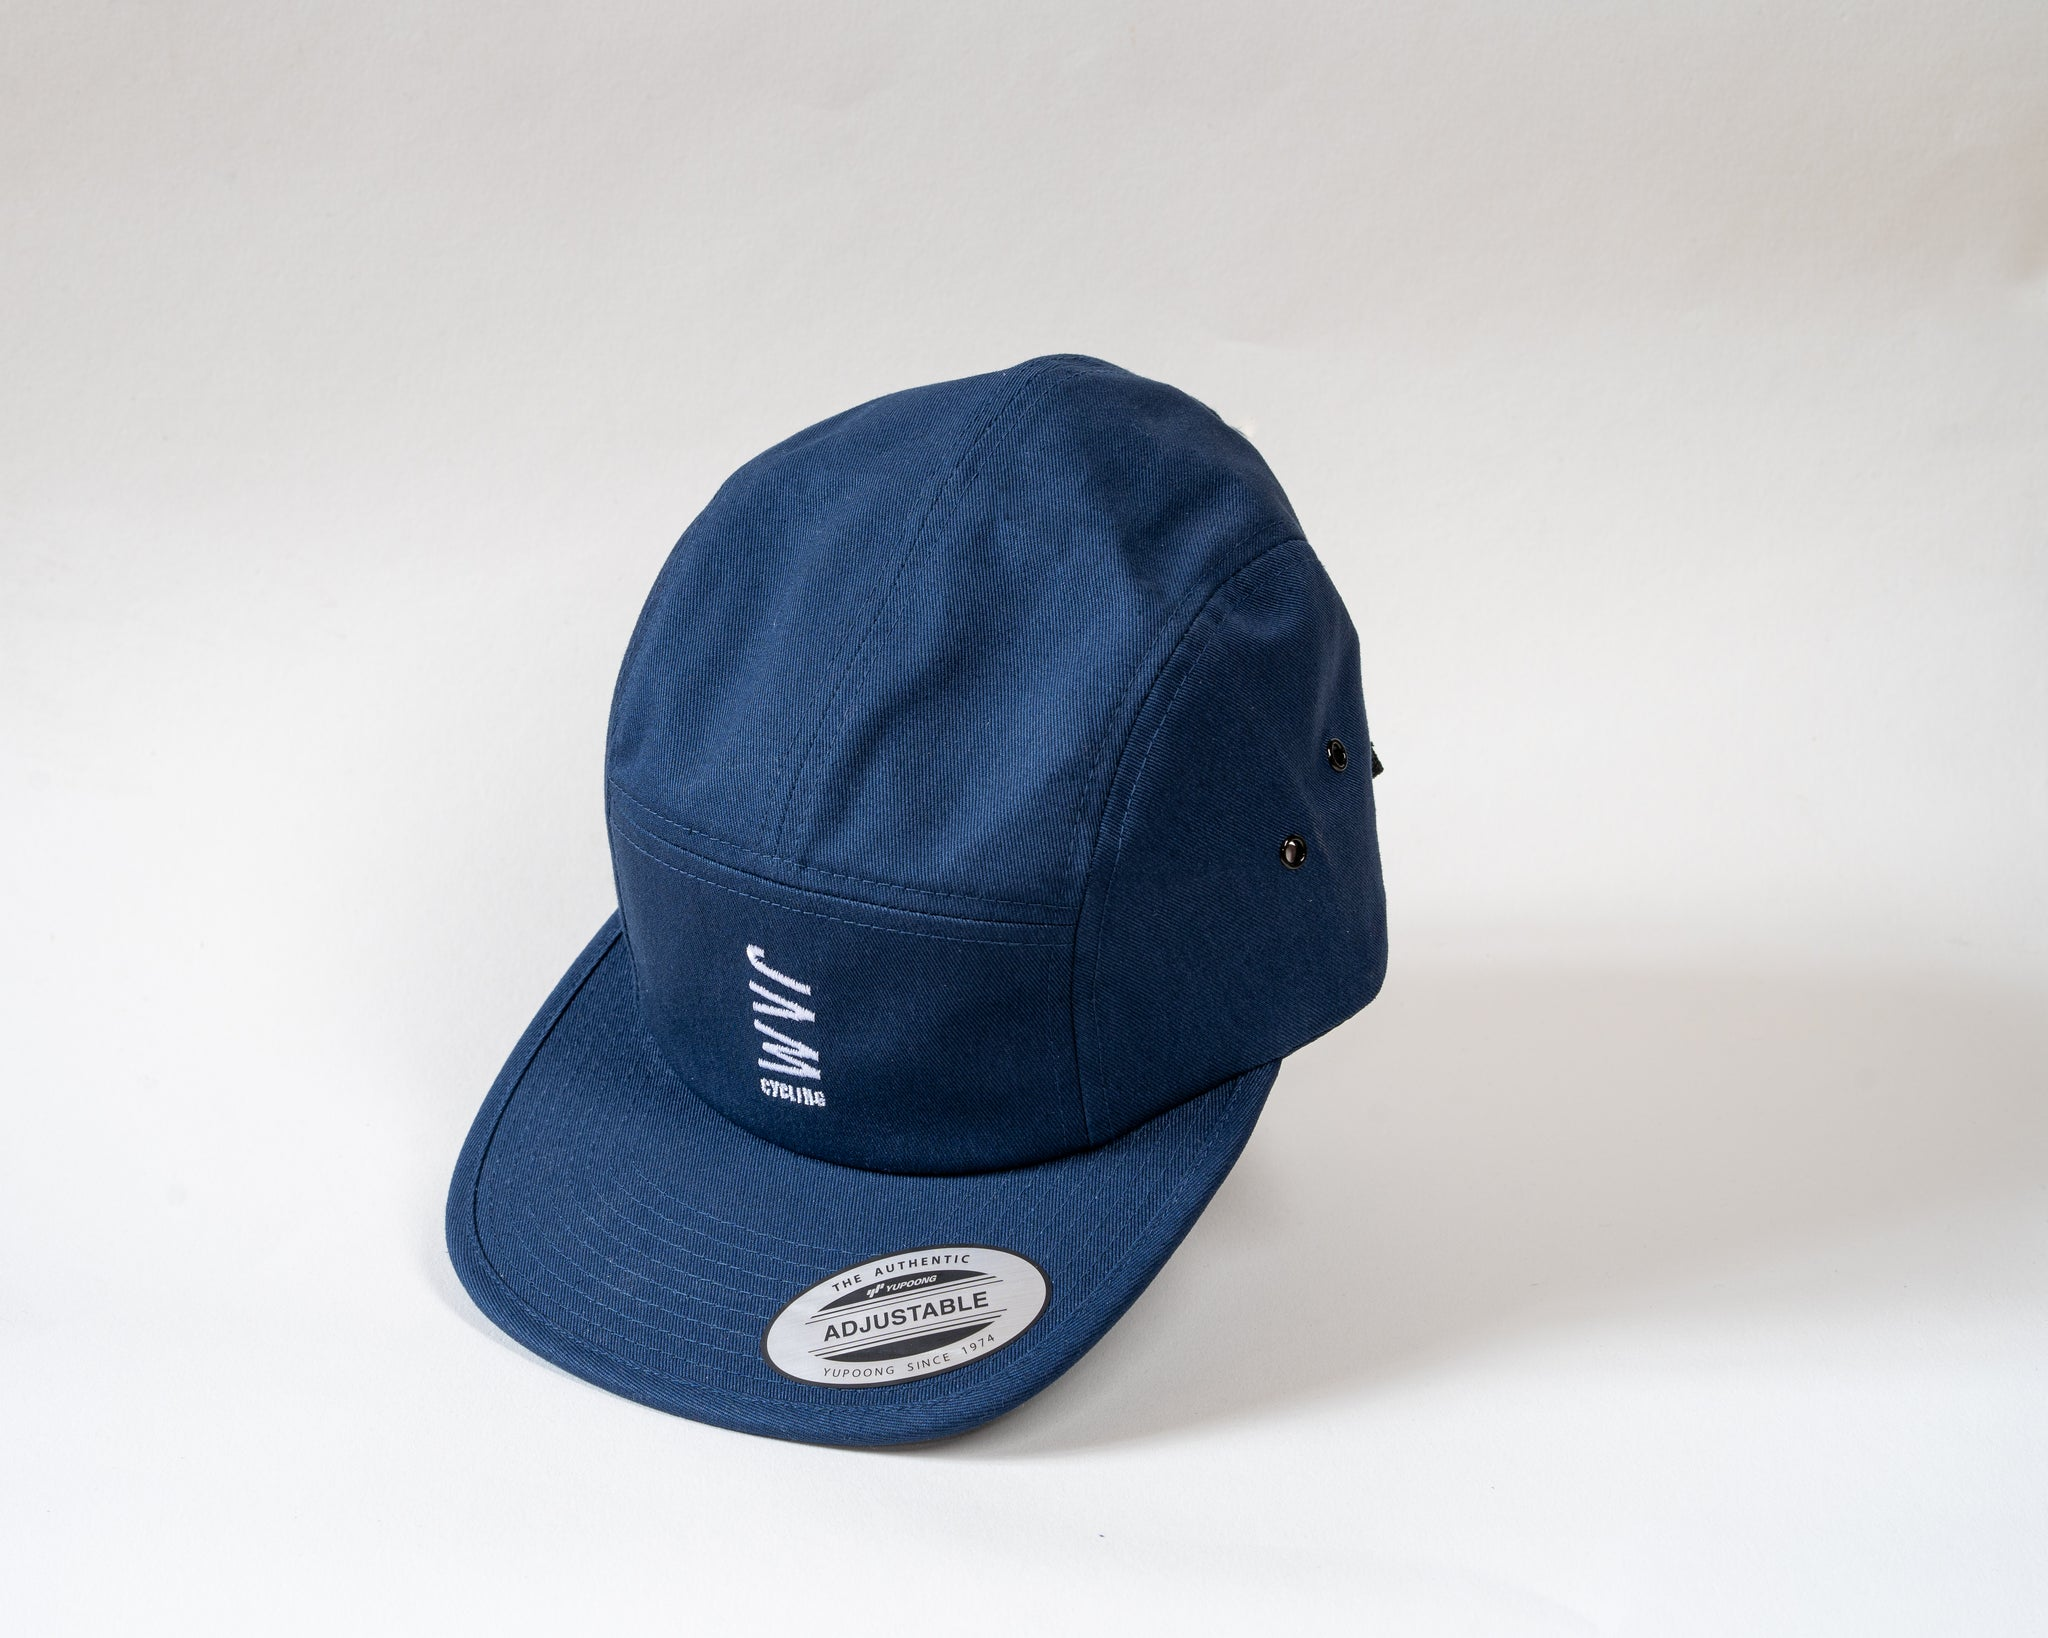 Navy 5 panel cap showcasing Jam logo symbol floating on a white background